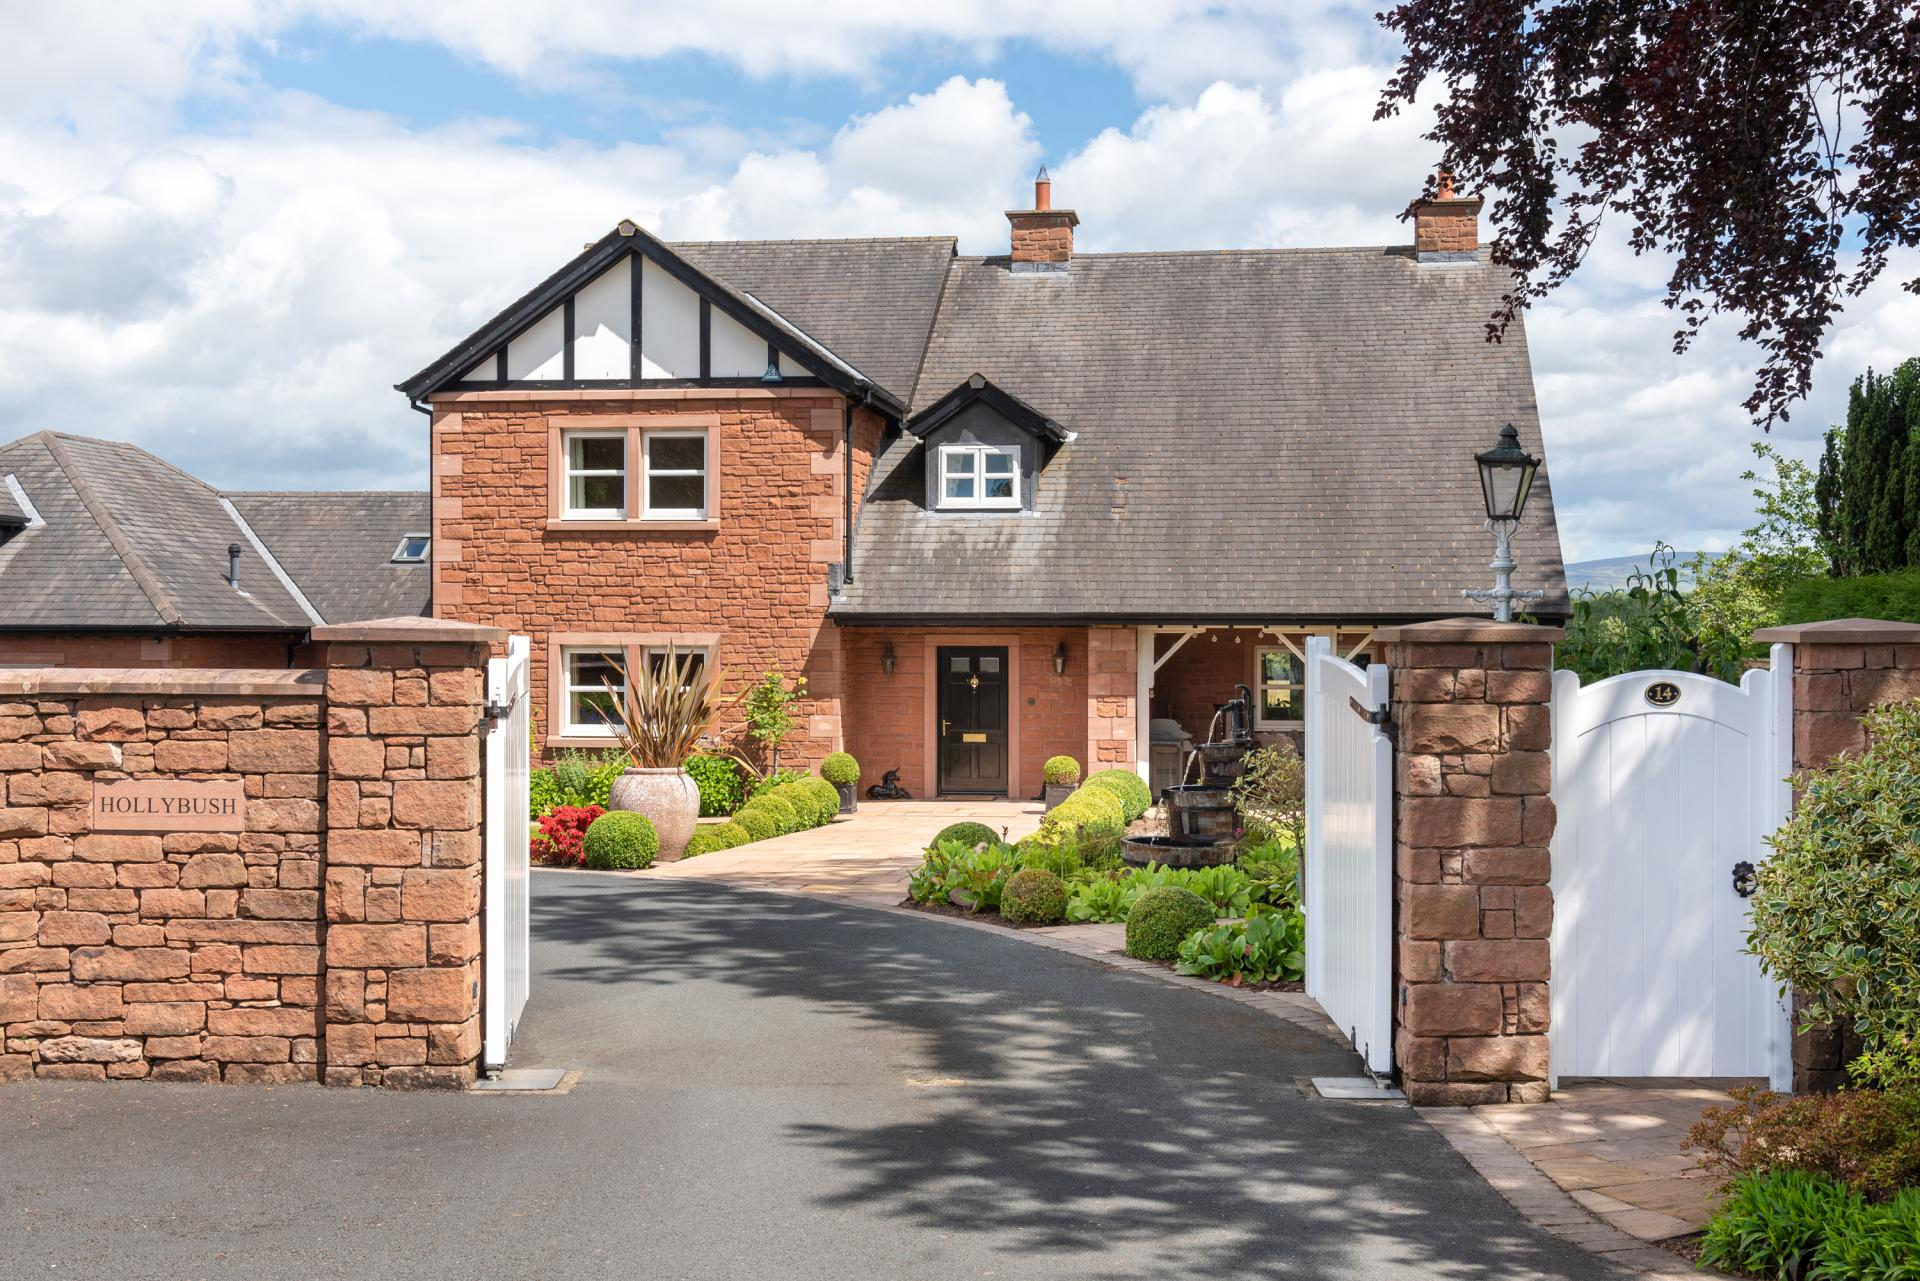 beautiful country home with landscaped gardens and white gates